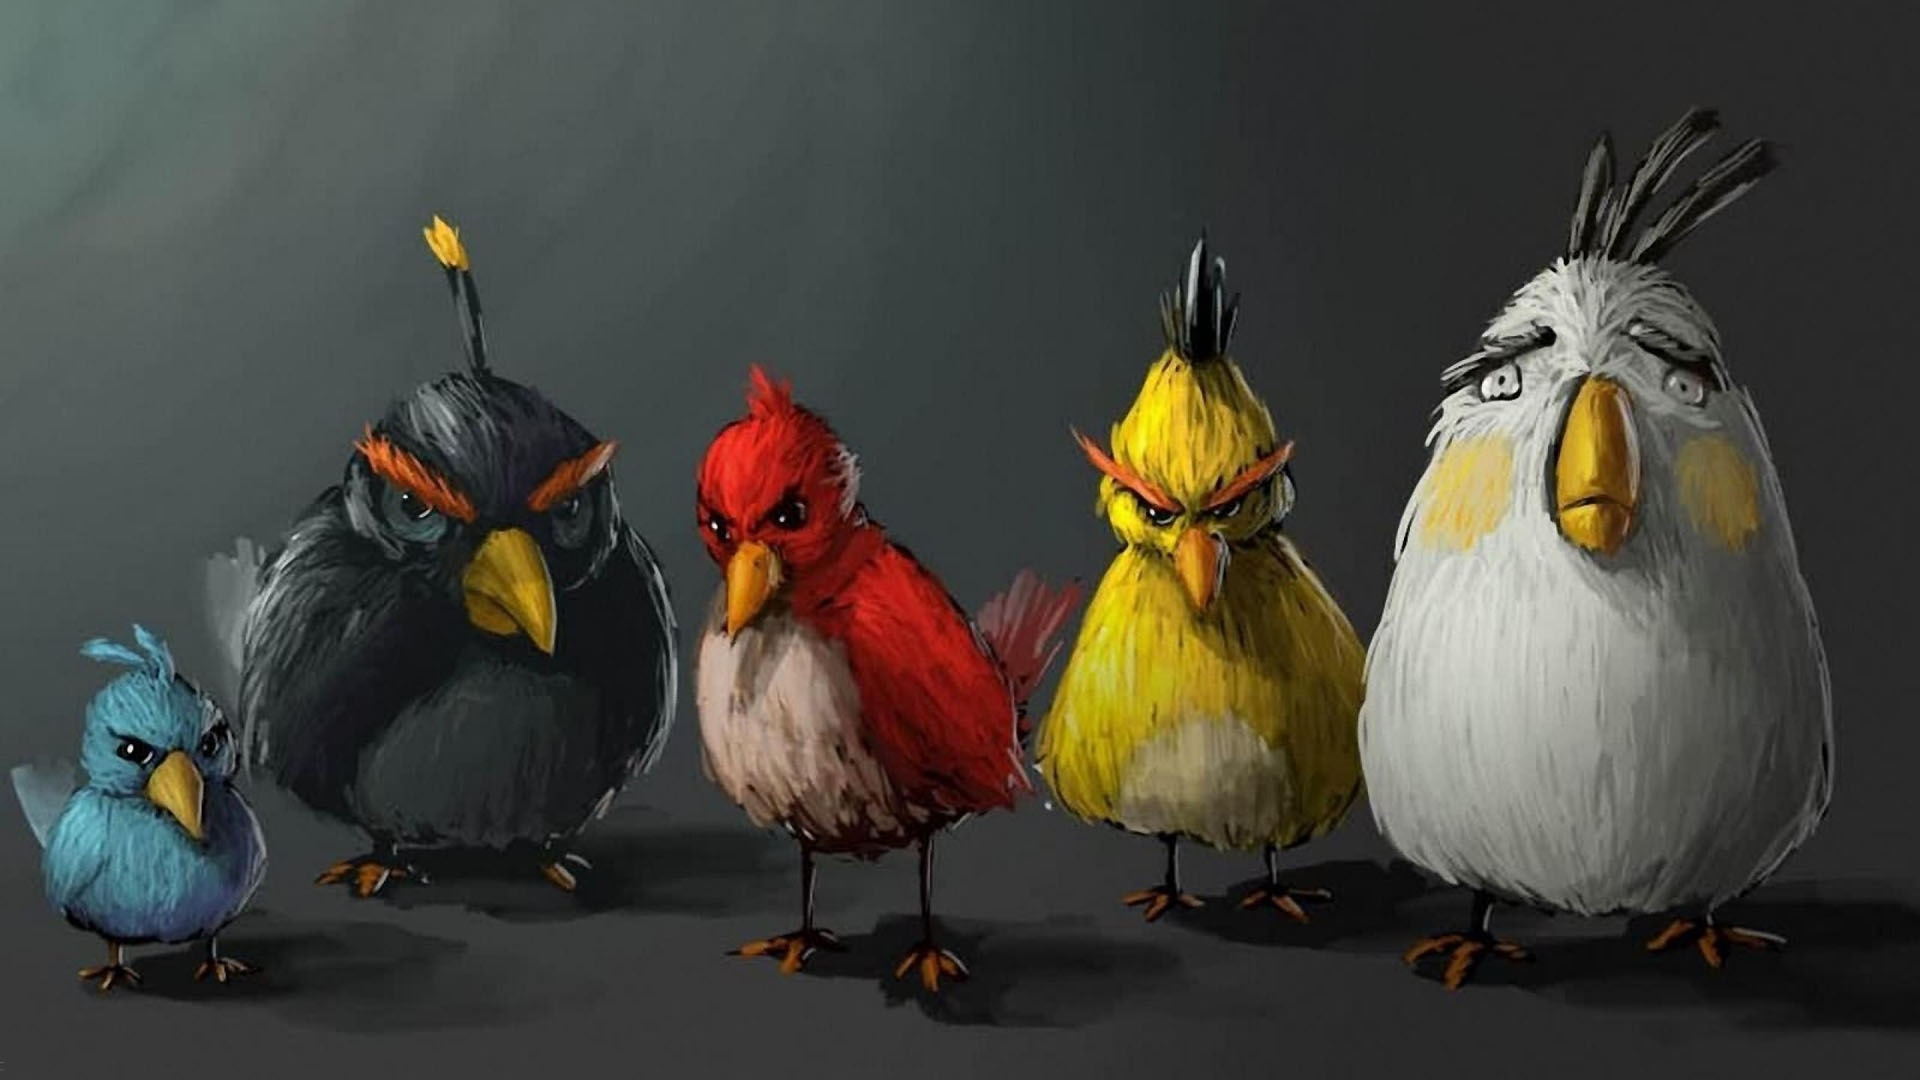 Angry Birds Art Pictures HD Wallpaper Angry Birds Art Pictures 1920x1080